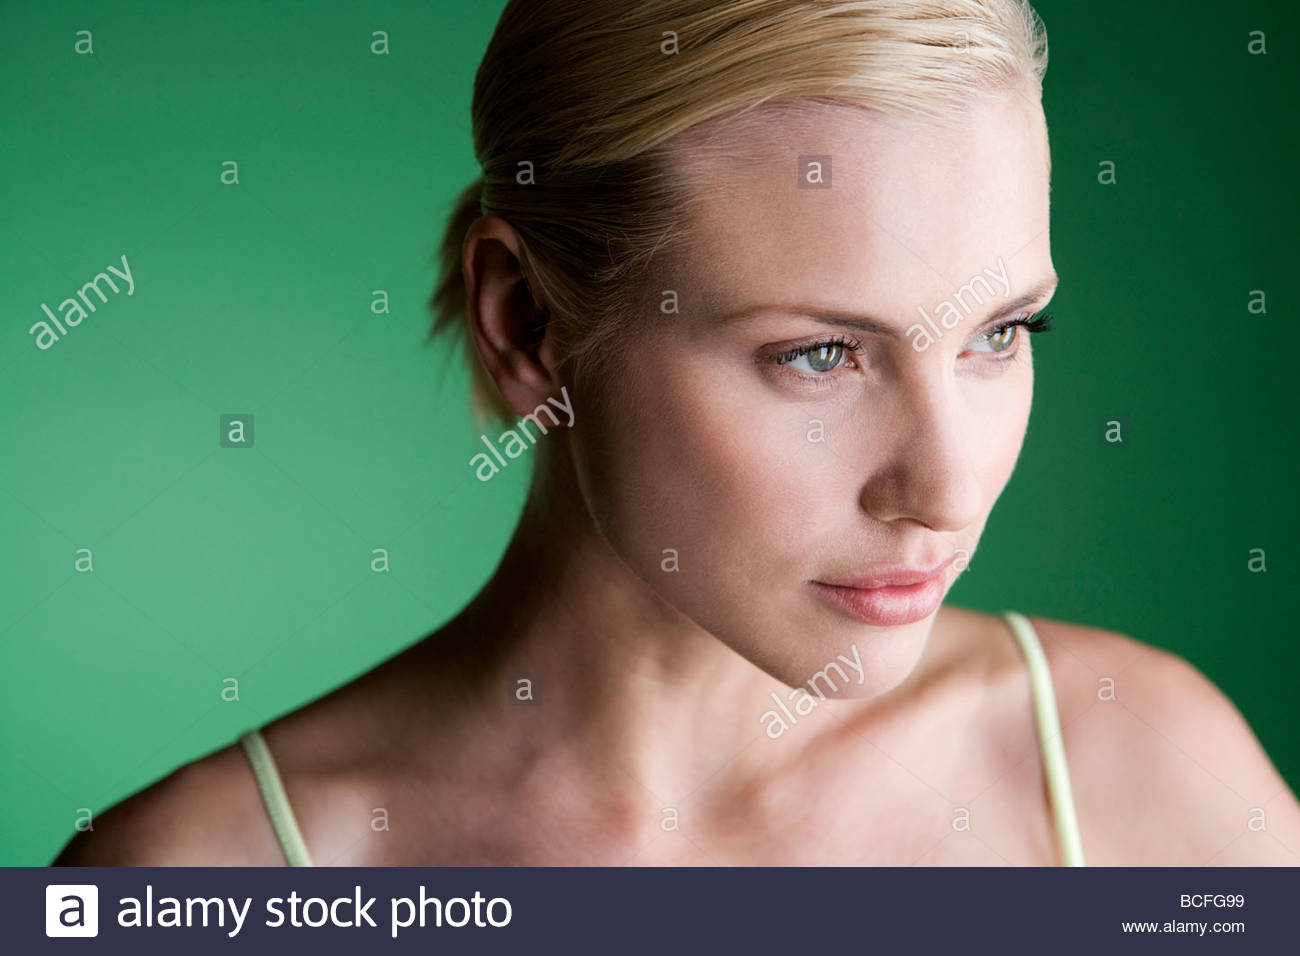 A portrait of a young blonde woman thinking - Stock Image